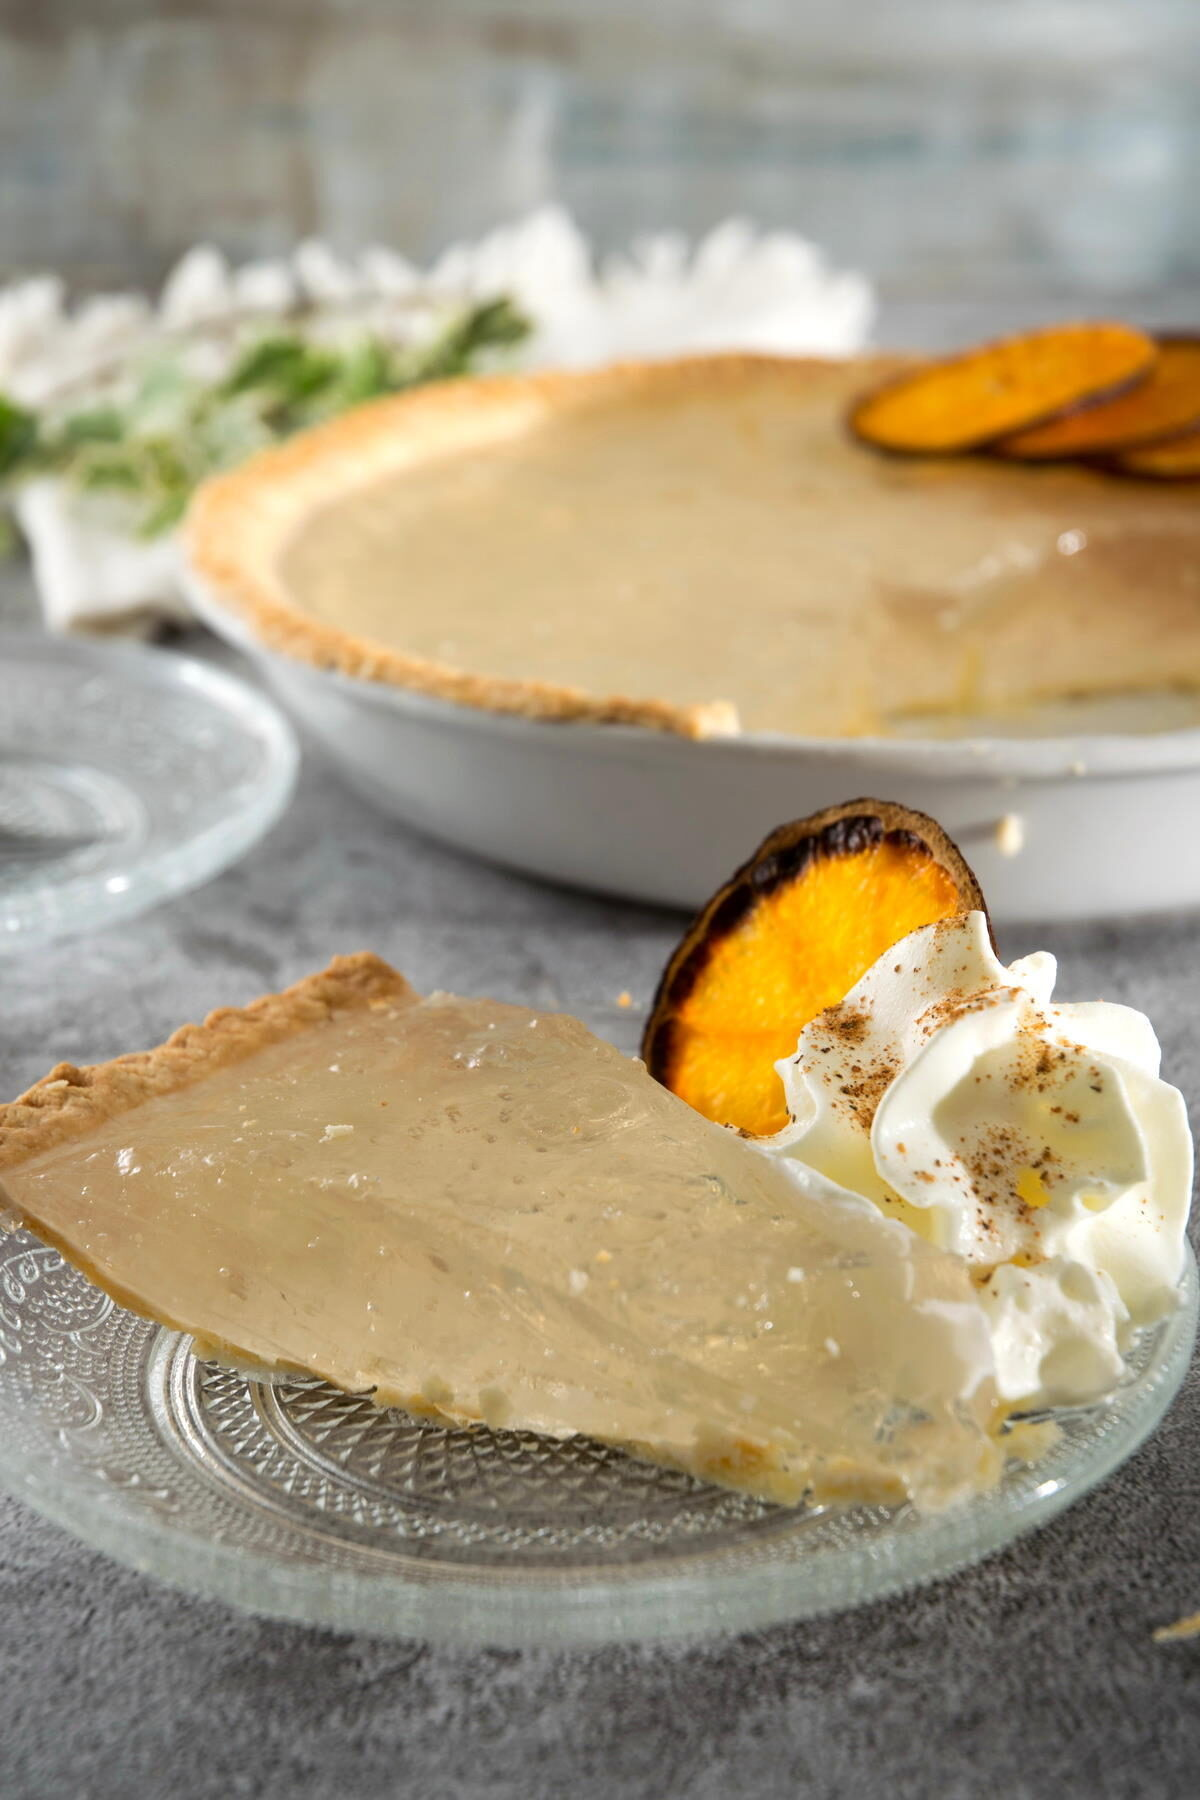 A slice of clear pumpkin pie on a clear glass plate with dehydrated orange slices and whipped cream.